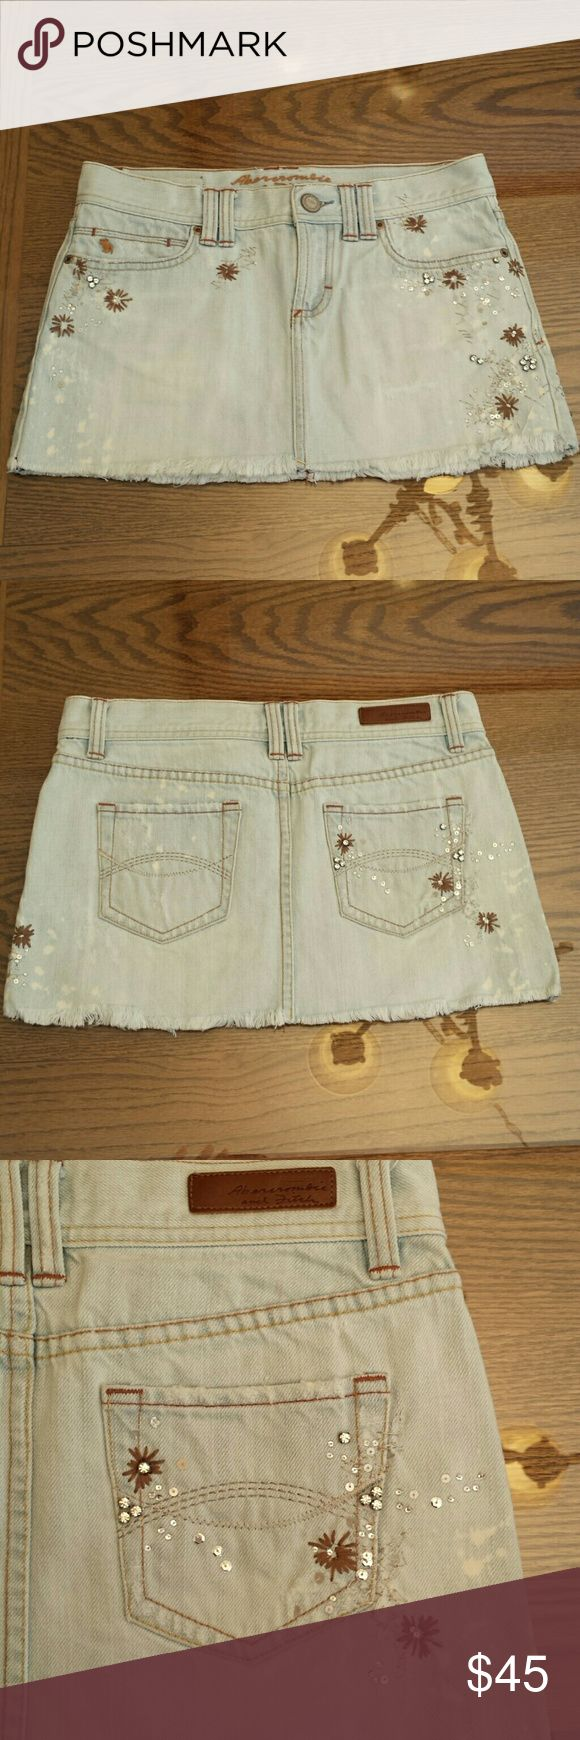 *Lowest* A&F mini skirt Size 0 light washed, bleach splatter look. Has sequin and rhinestone detail, super cute and very lightly worn. Hand wash and hang to dry. No trades. Abercrombie & Fitch Skirts Mini